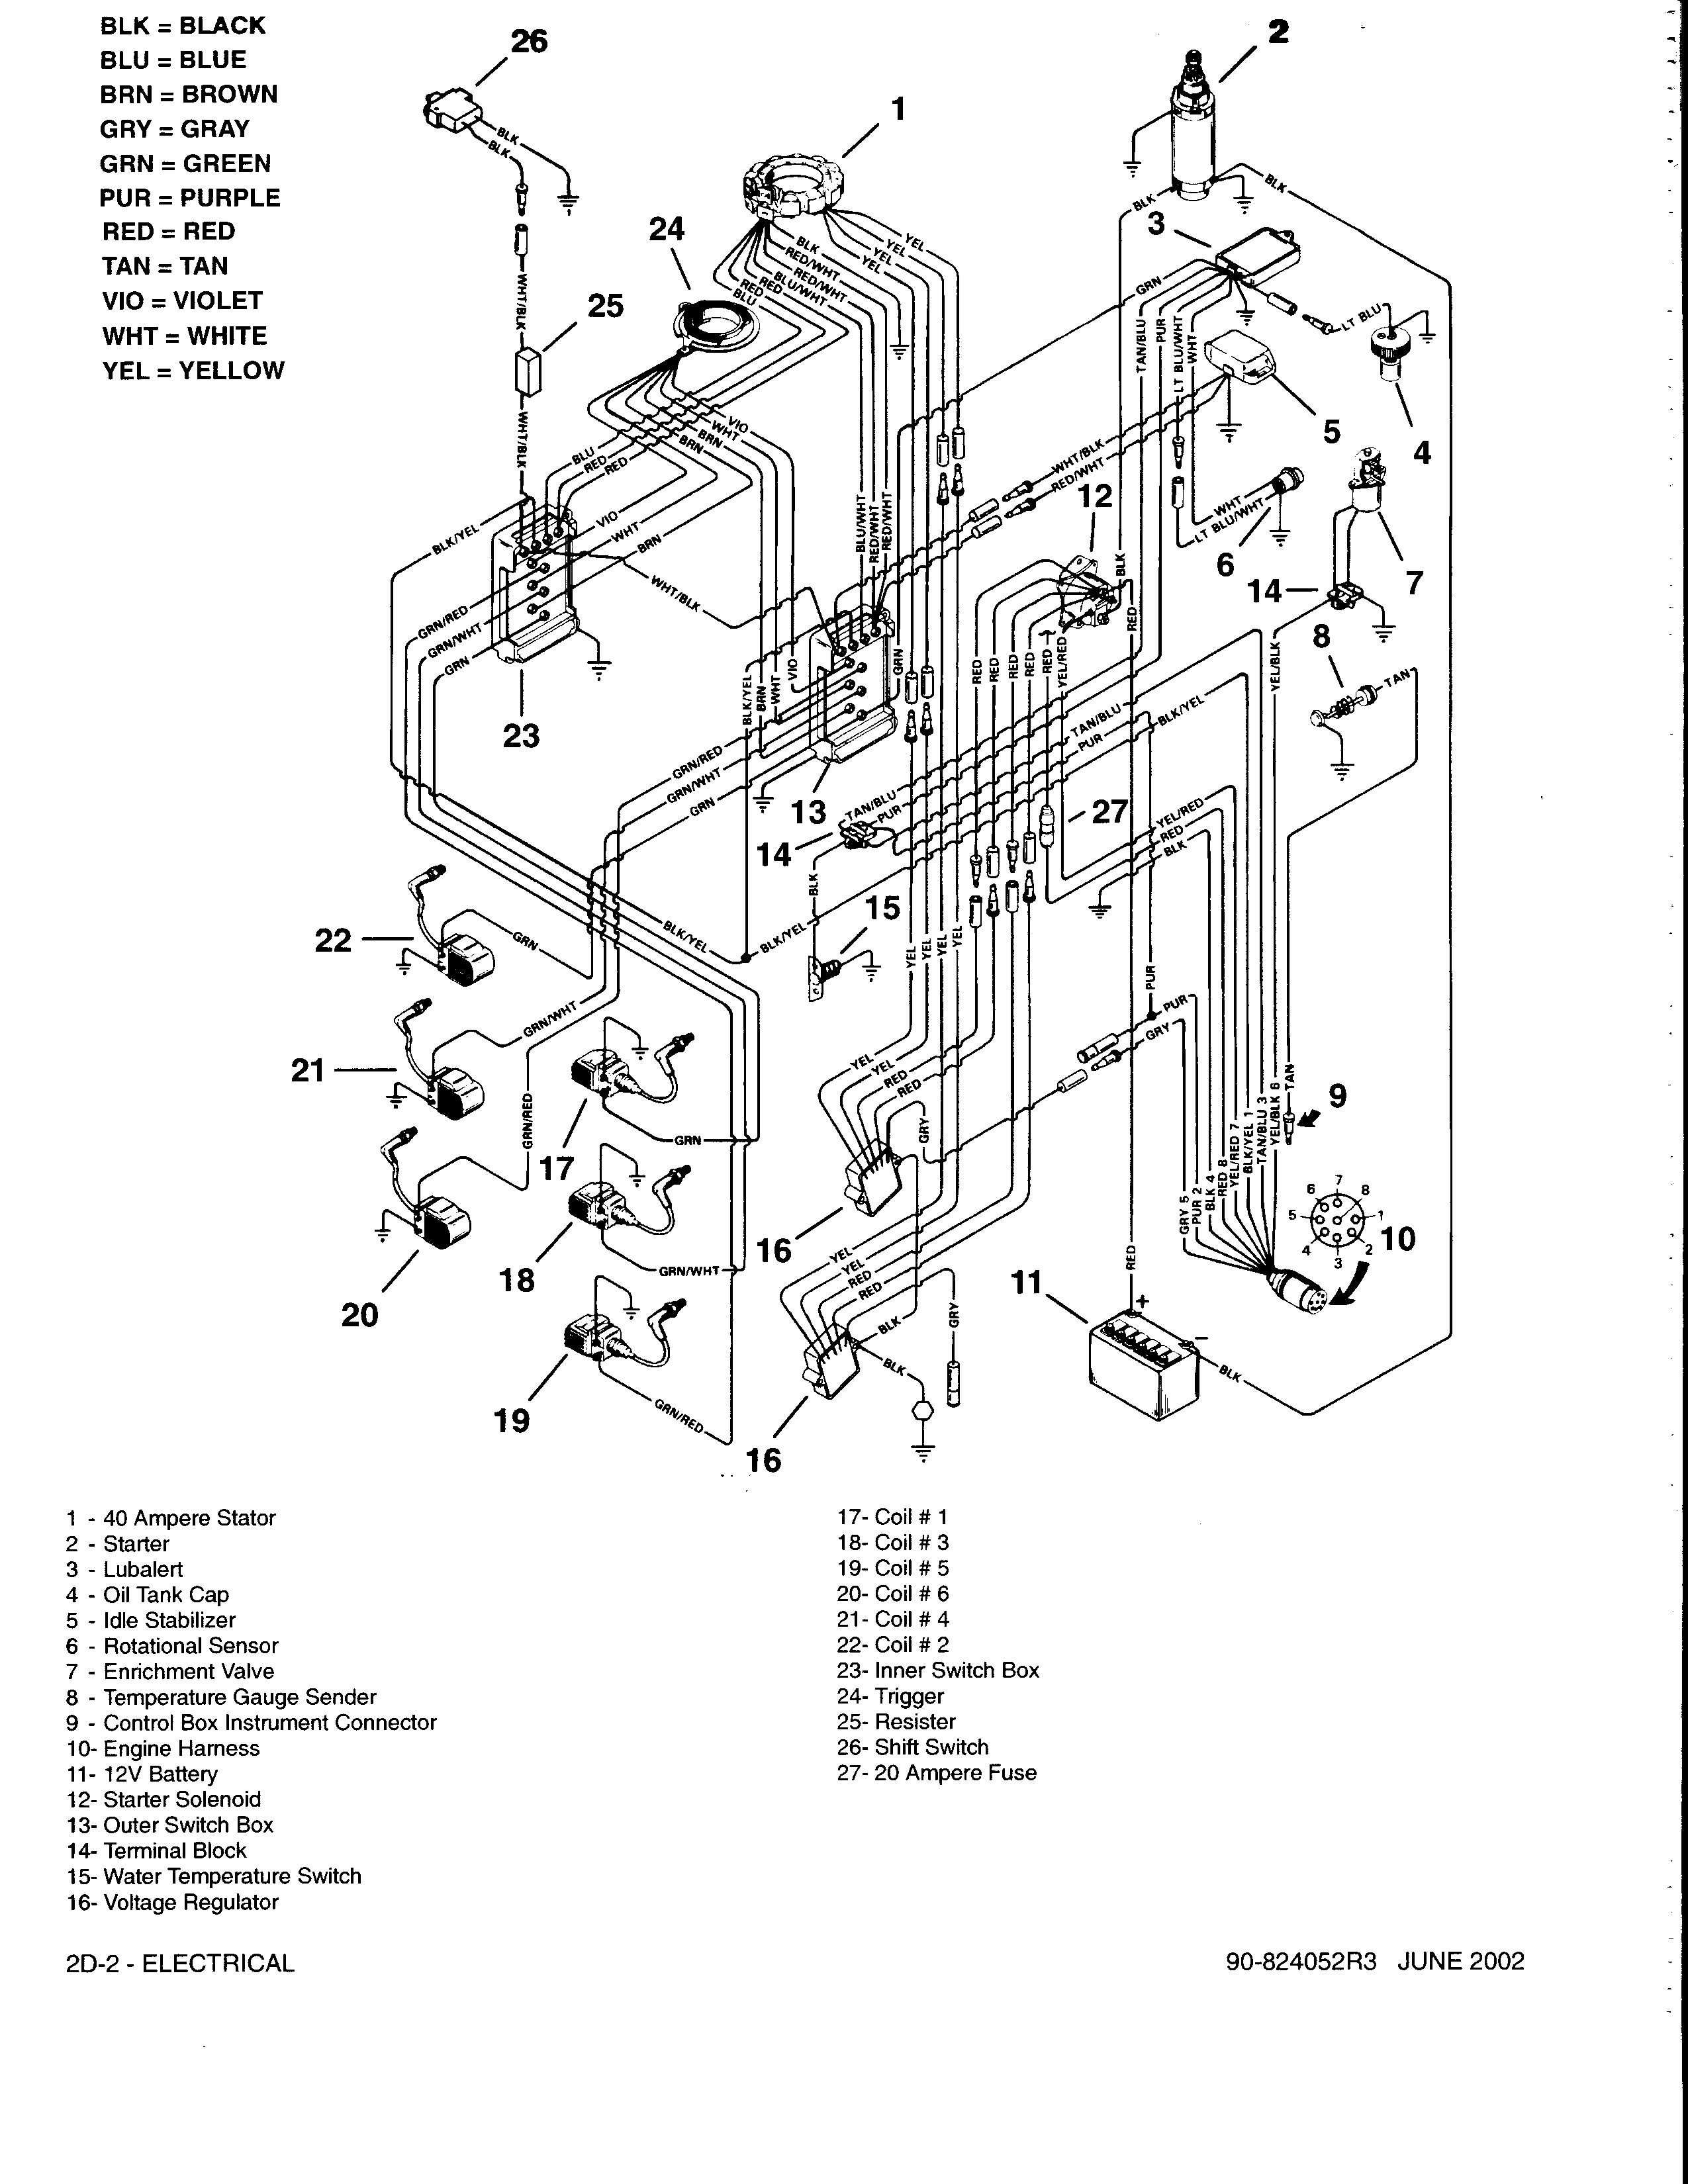 2013 06 01_001820_175_wiring diagrams 739591 yamaha outboard wiring harness diagram yamaha suzuki outboard tachometer wiring diagram at readyjetset.co